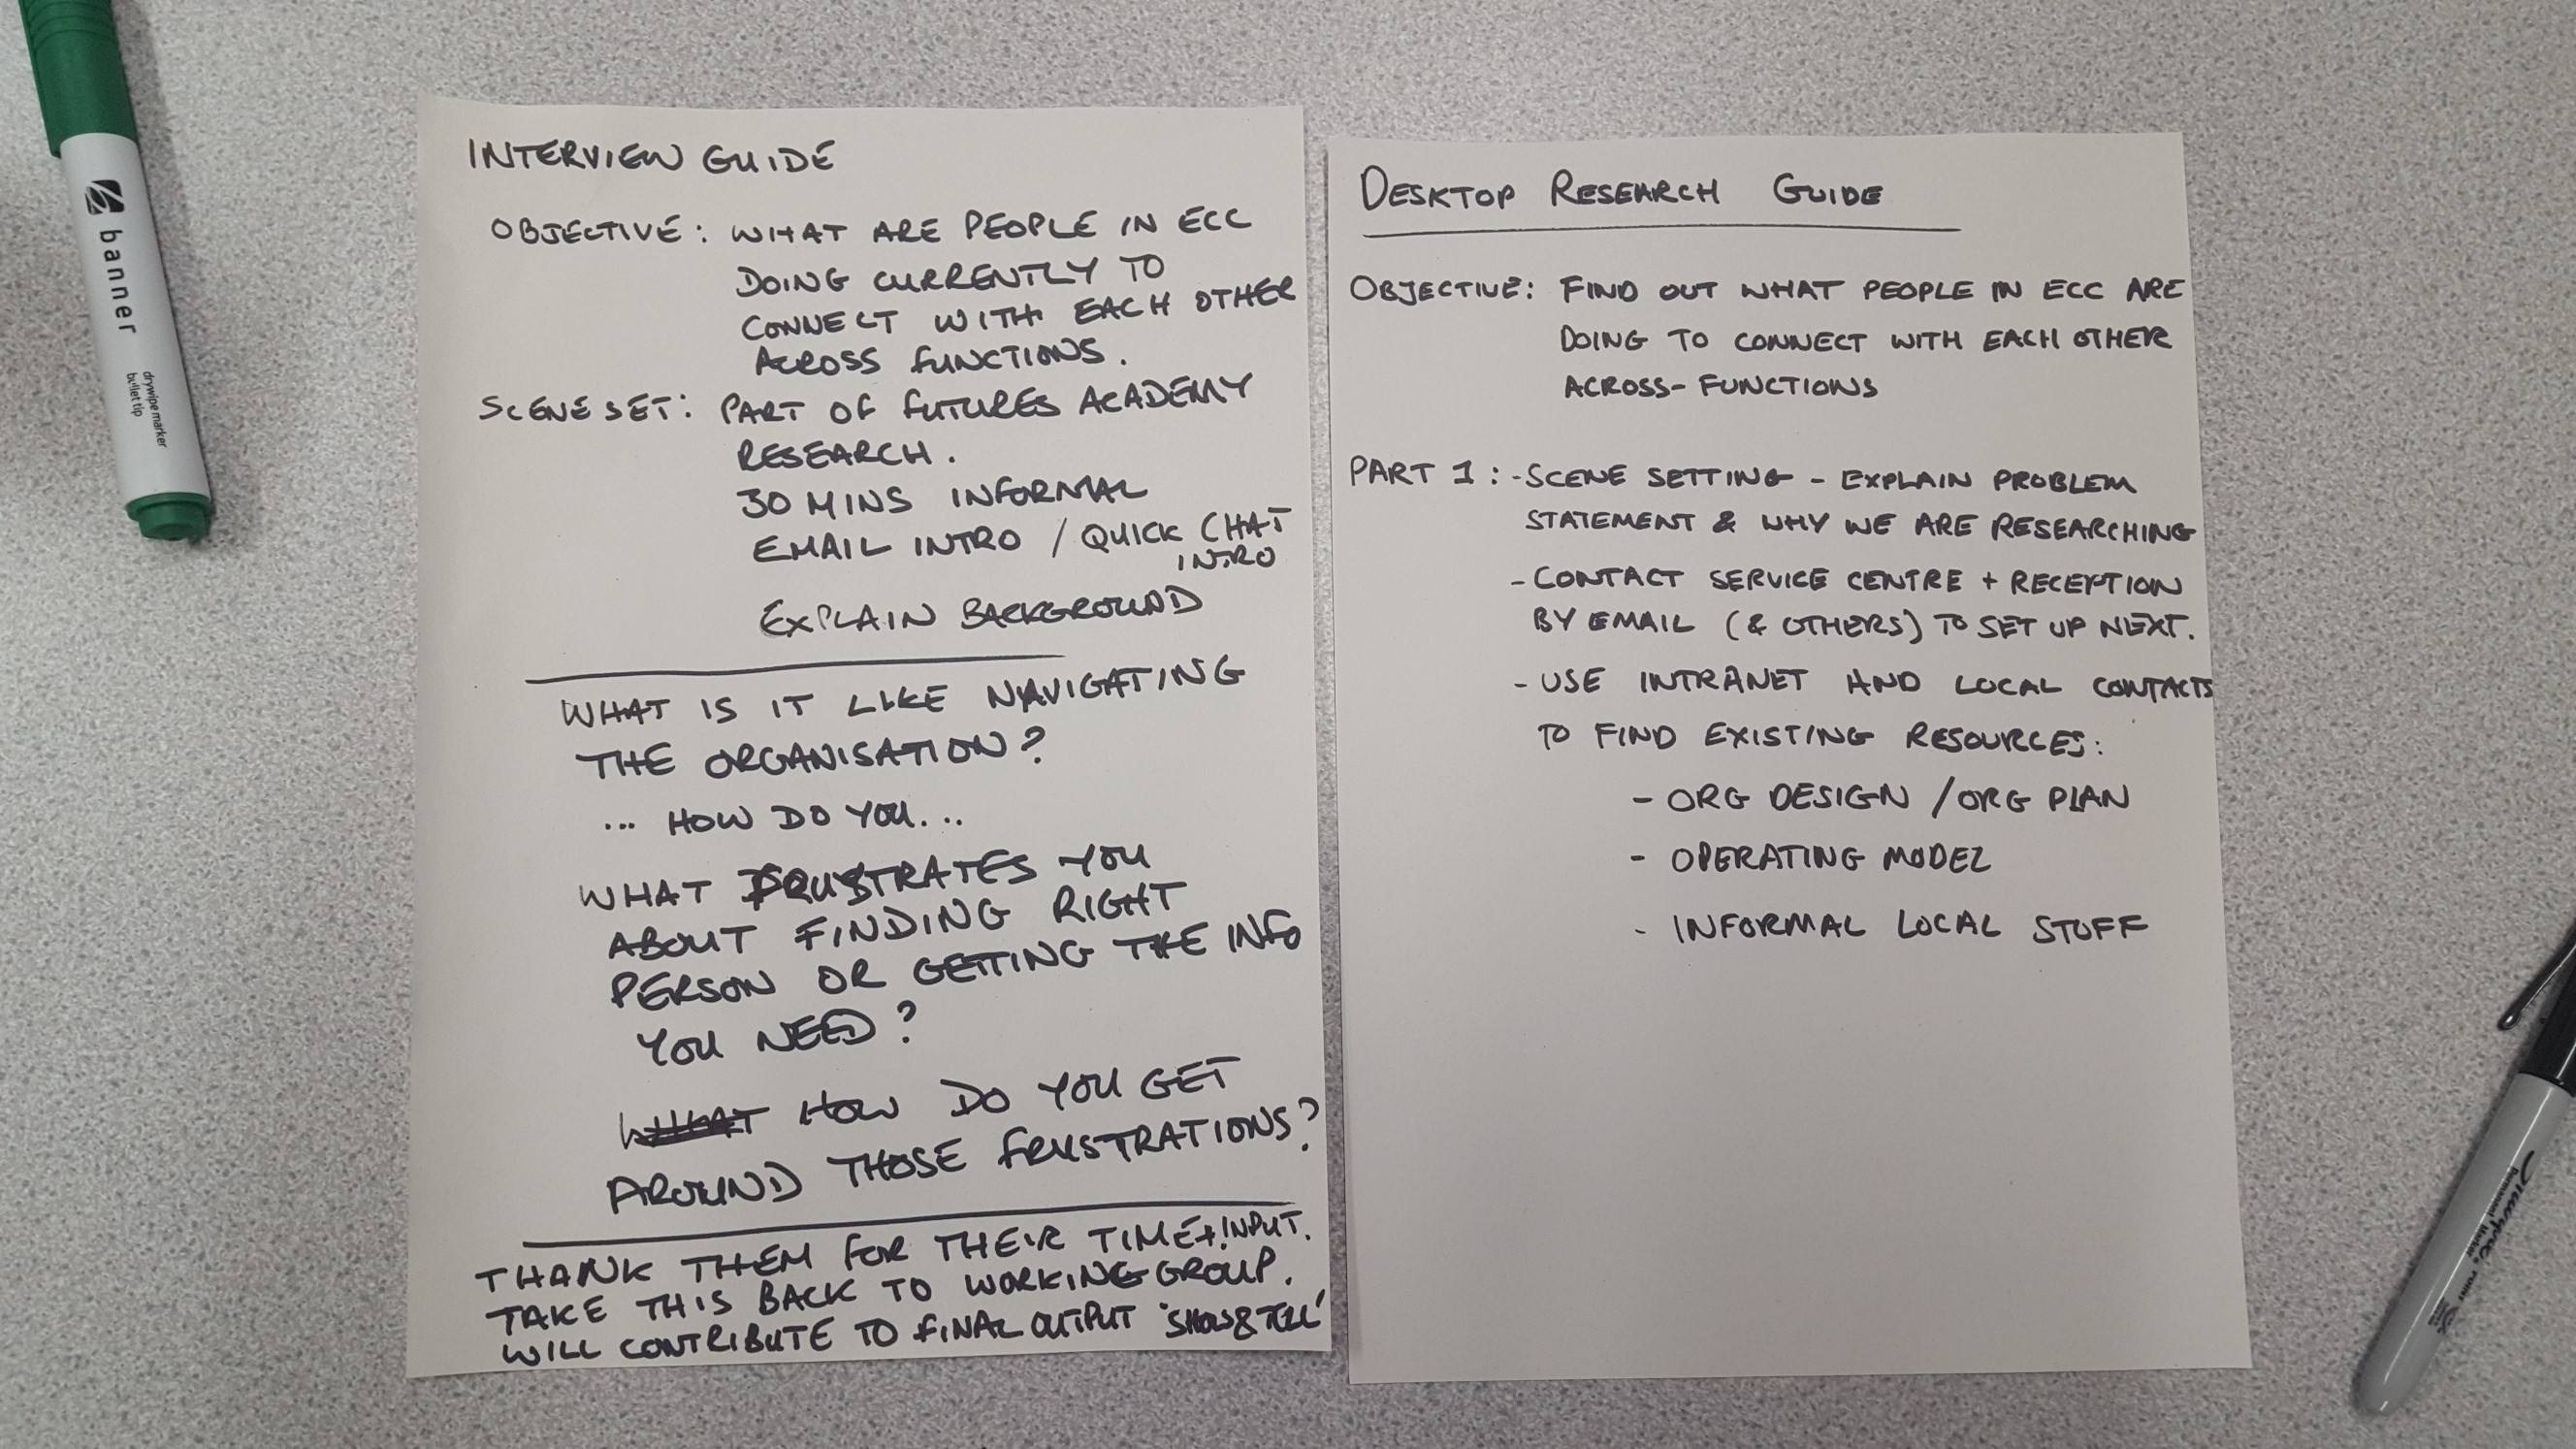 A3 pieces of paper with our user research guidelines for interviews and desktop research written on them